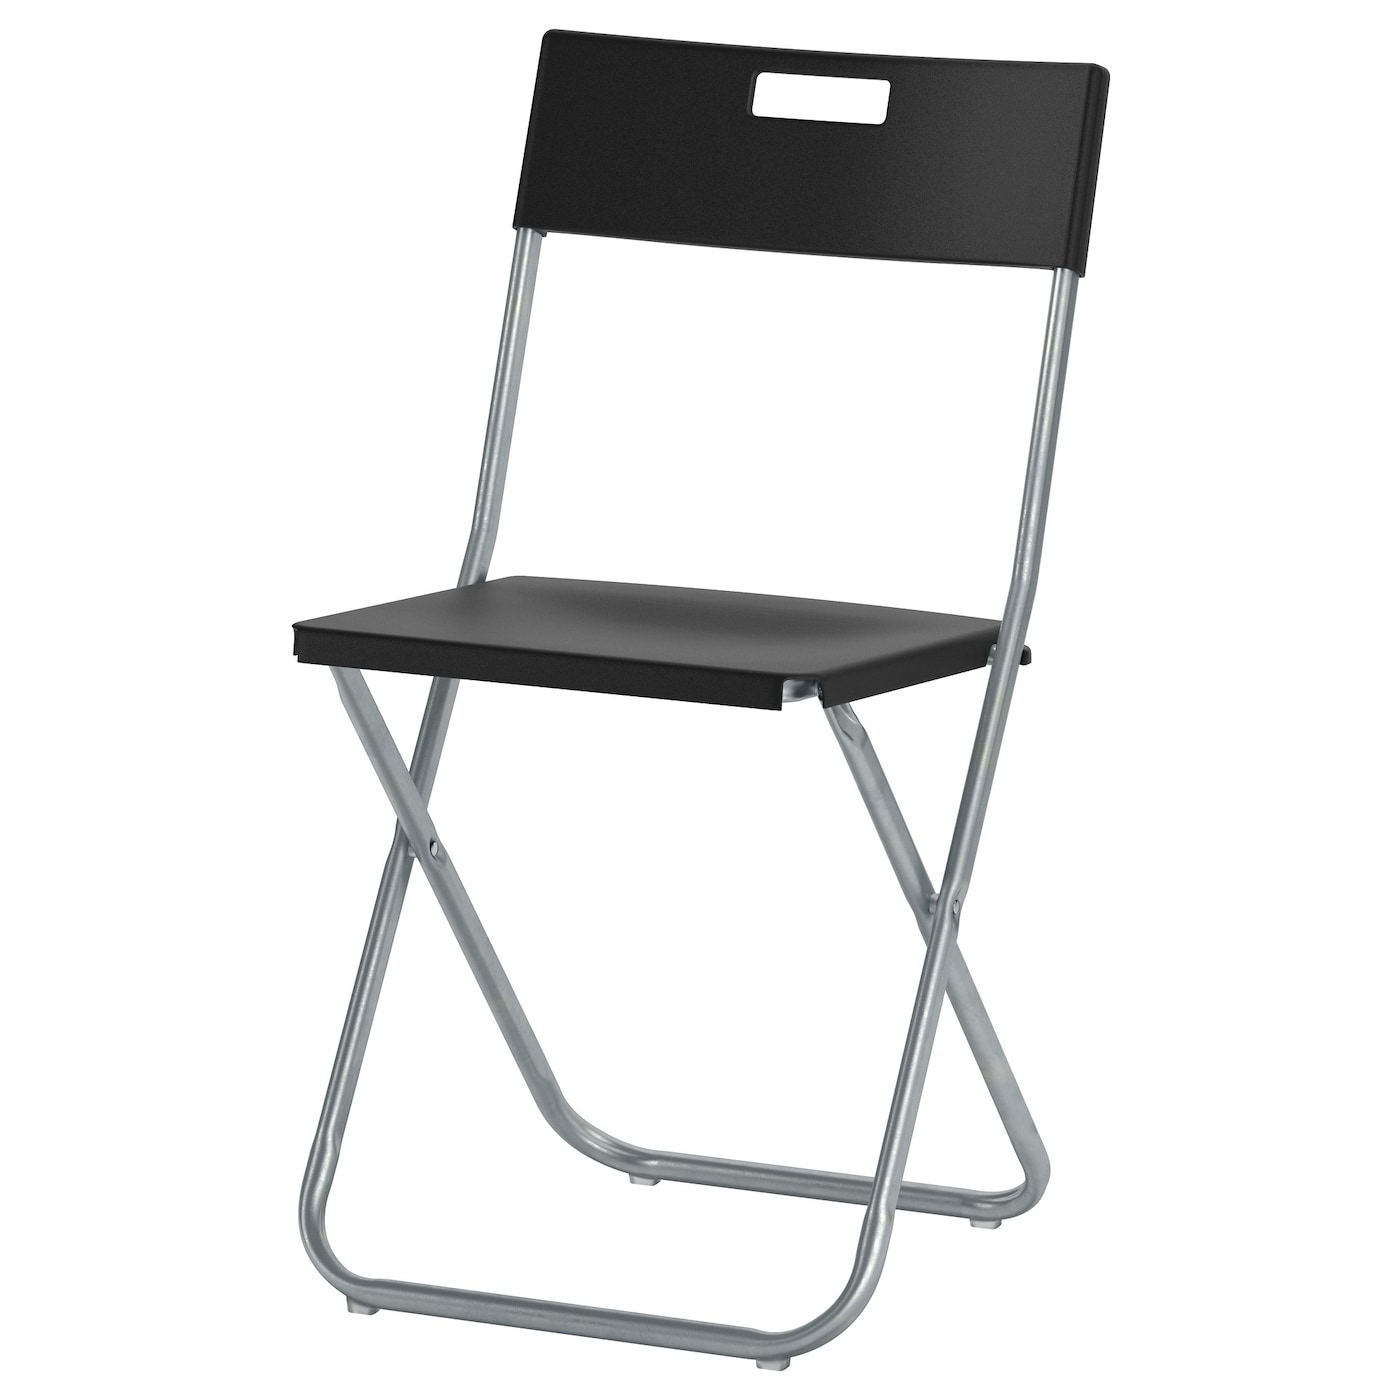 IKEA GUNDE Folding Chair You Can Fold The So It Takes Less Space When